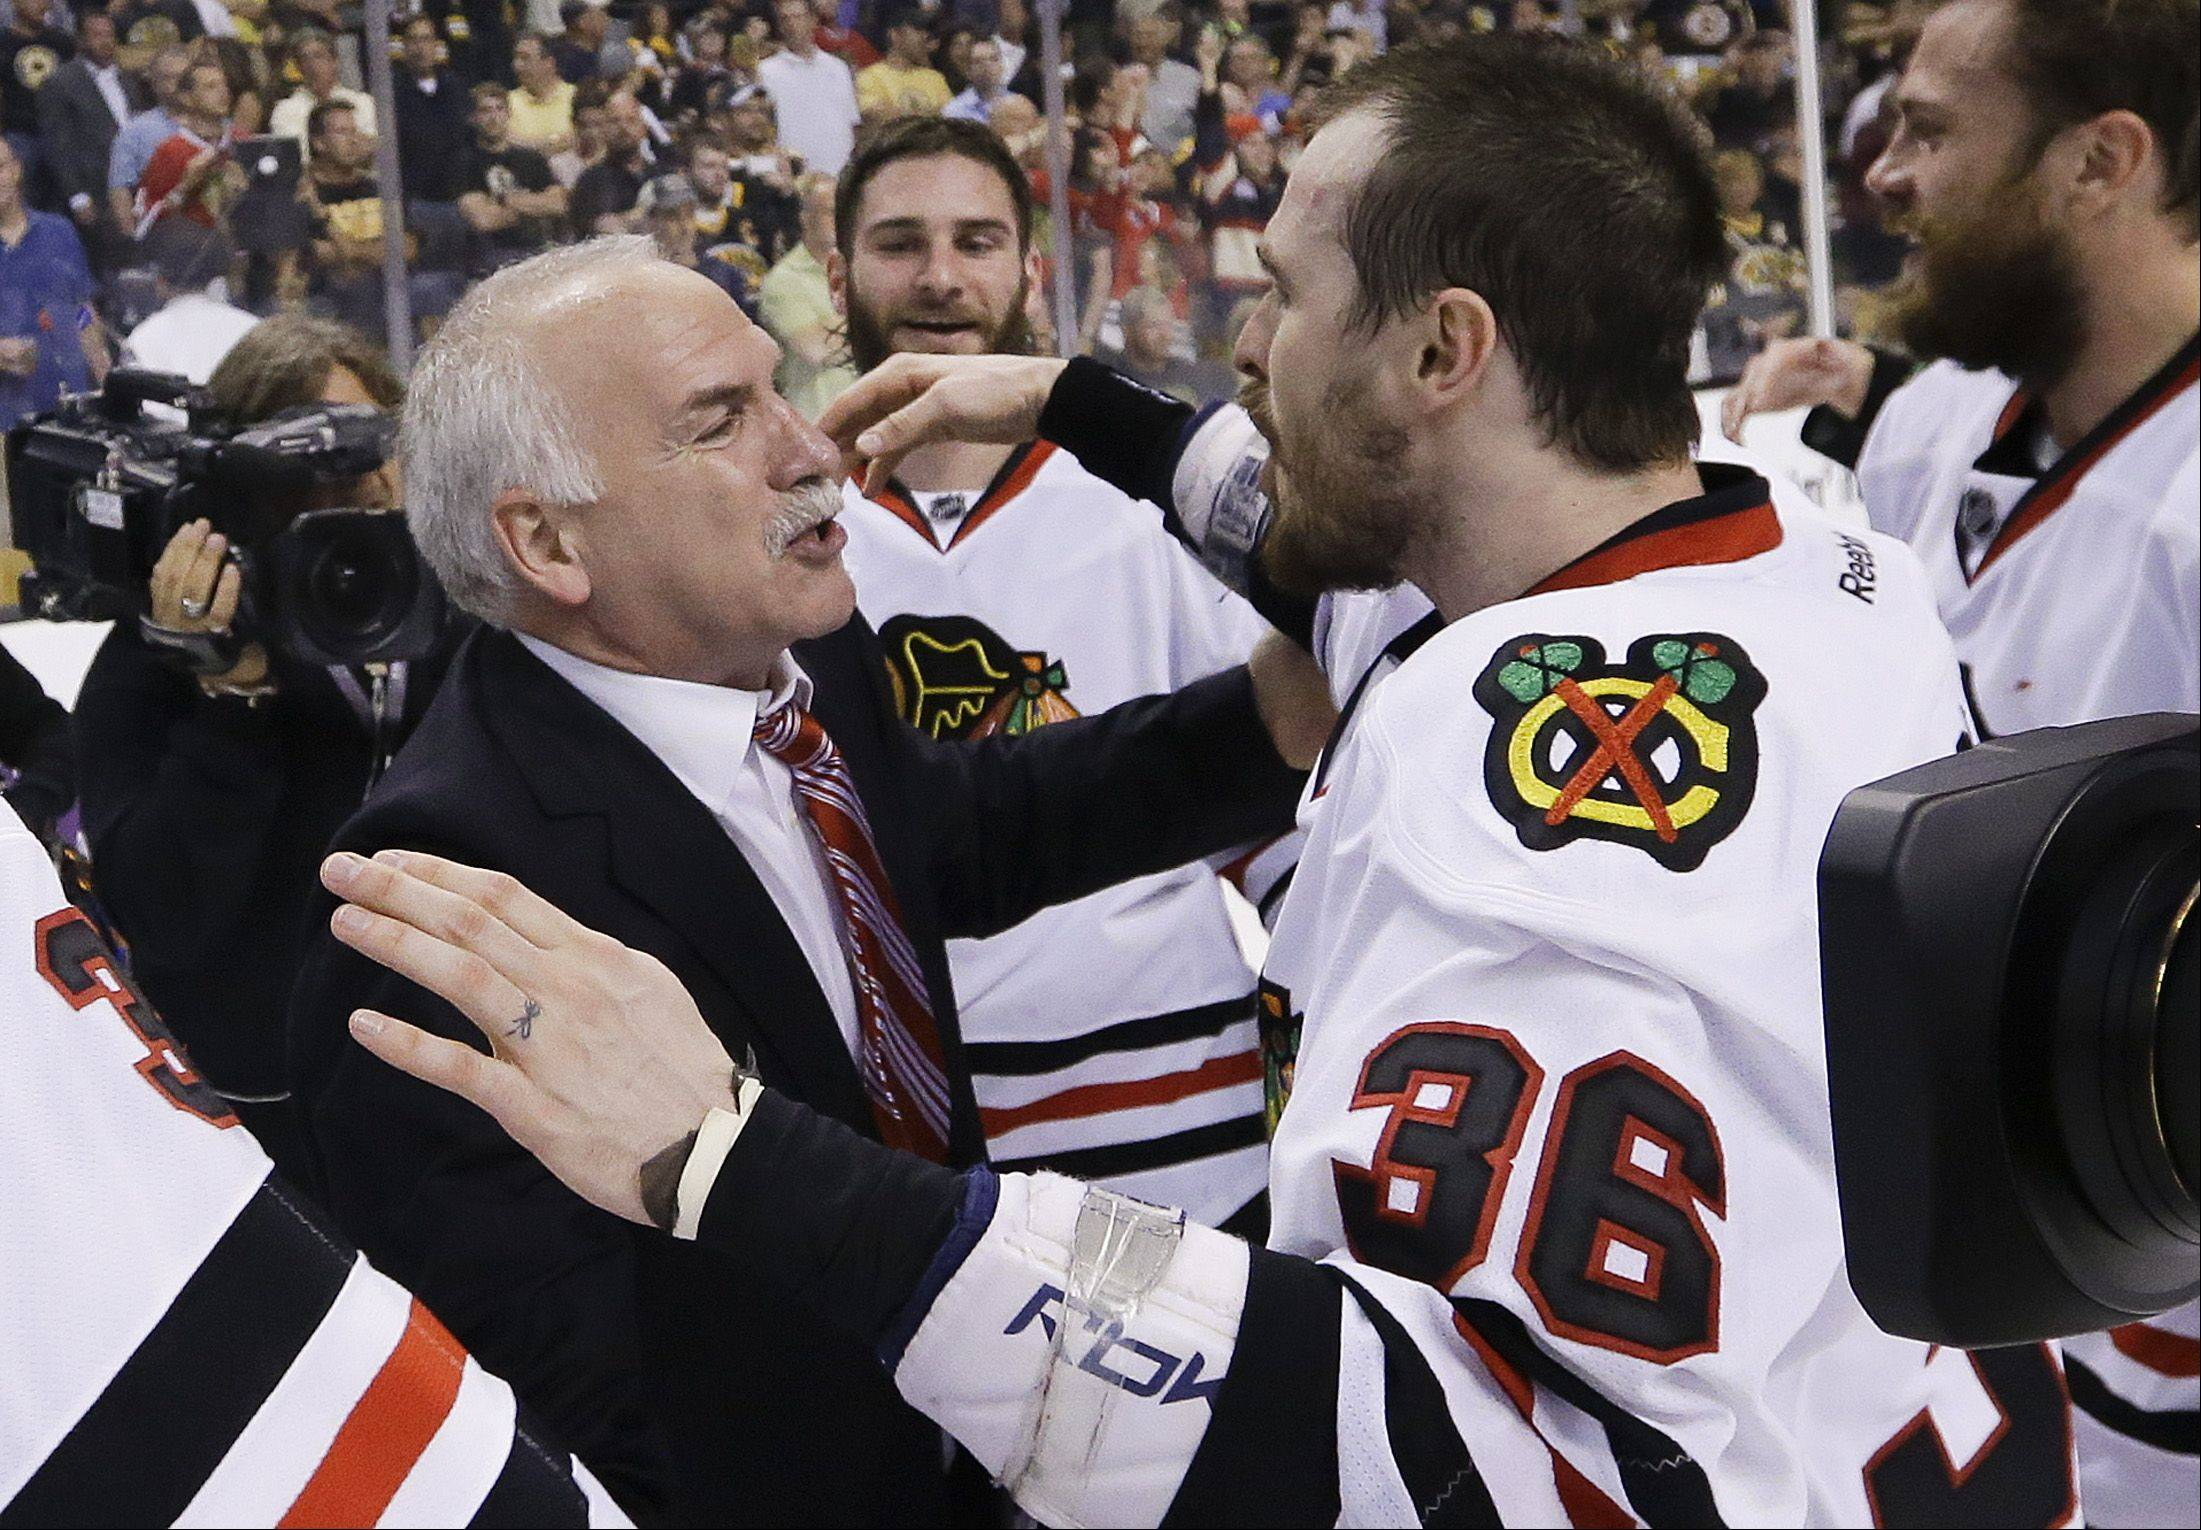 Blackhawks head coach Joel Quenneville, here congratulating center Dave Bolland after winning the Stanley Cup in Boston, deserves a lot of credit for the title run.